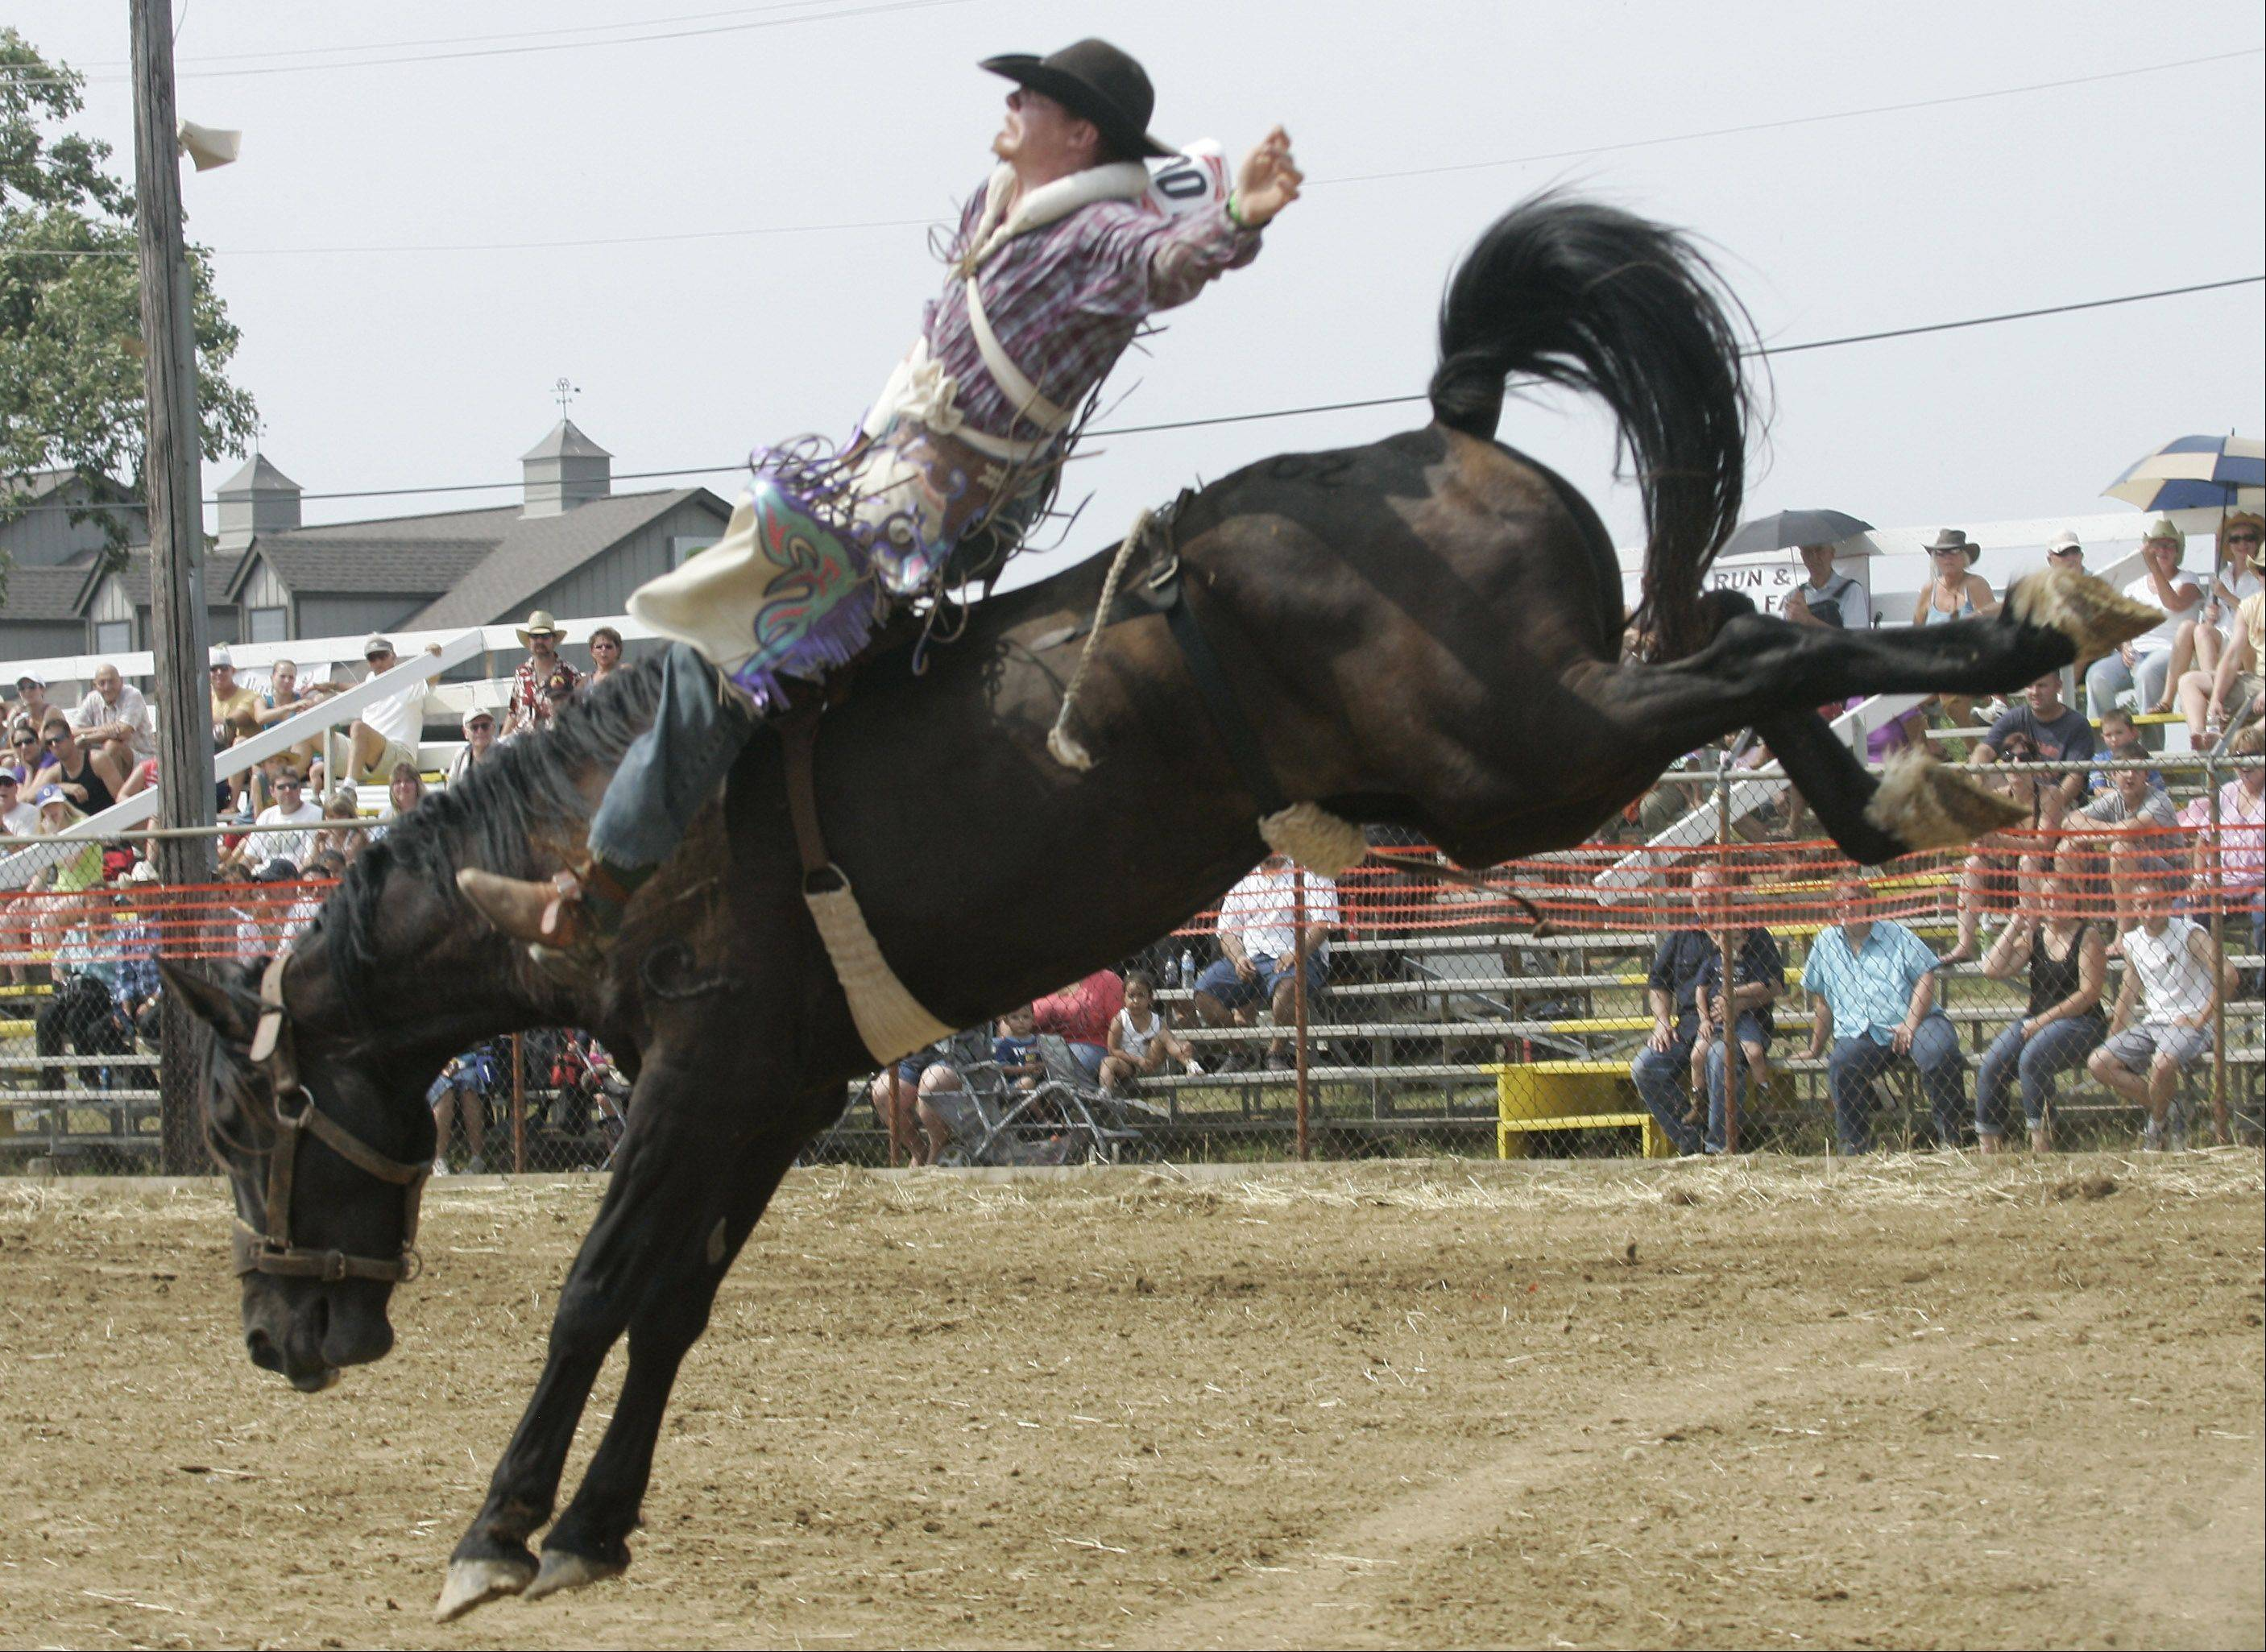 Joshua Whitaker rode Big Jake to win bronco riding during a previous edition of the IPRA Rodeo hosted by the Wauconda Chamber of Commerce at the Golden Oaks rodeo grounds.